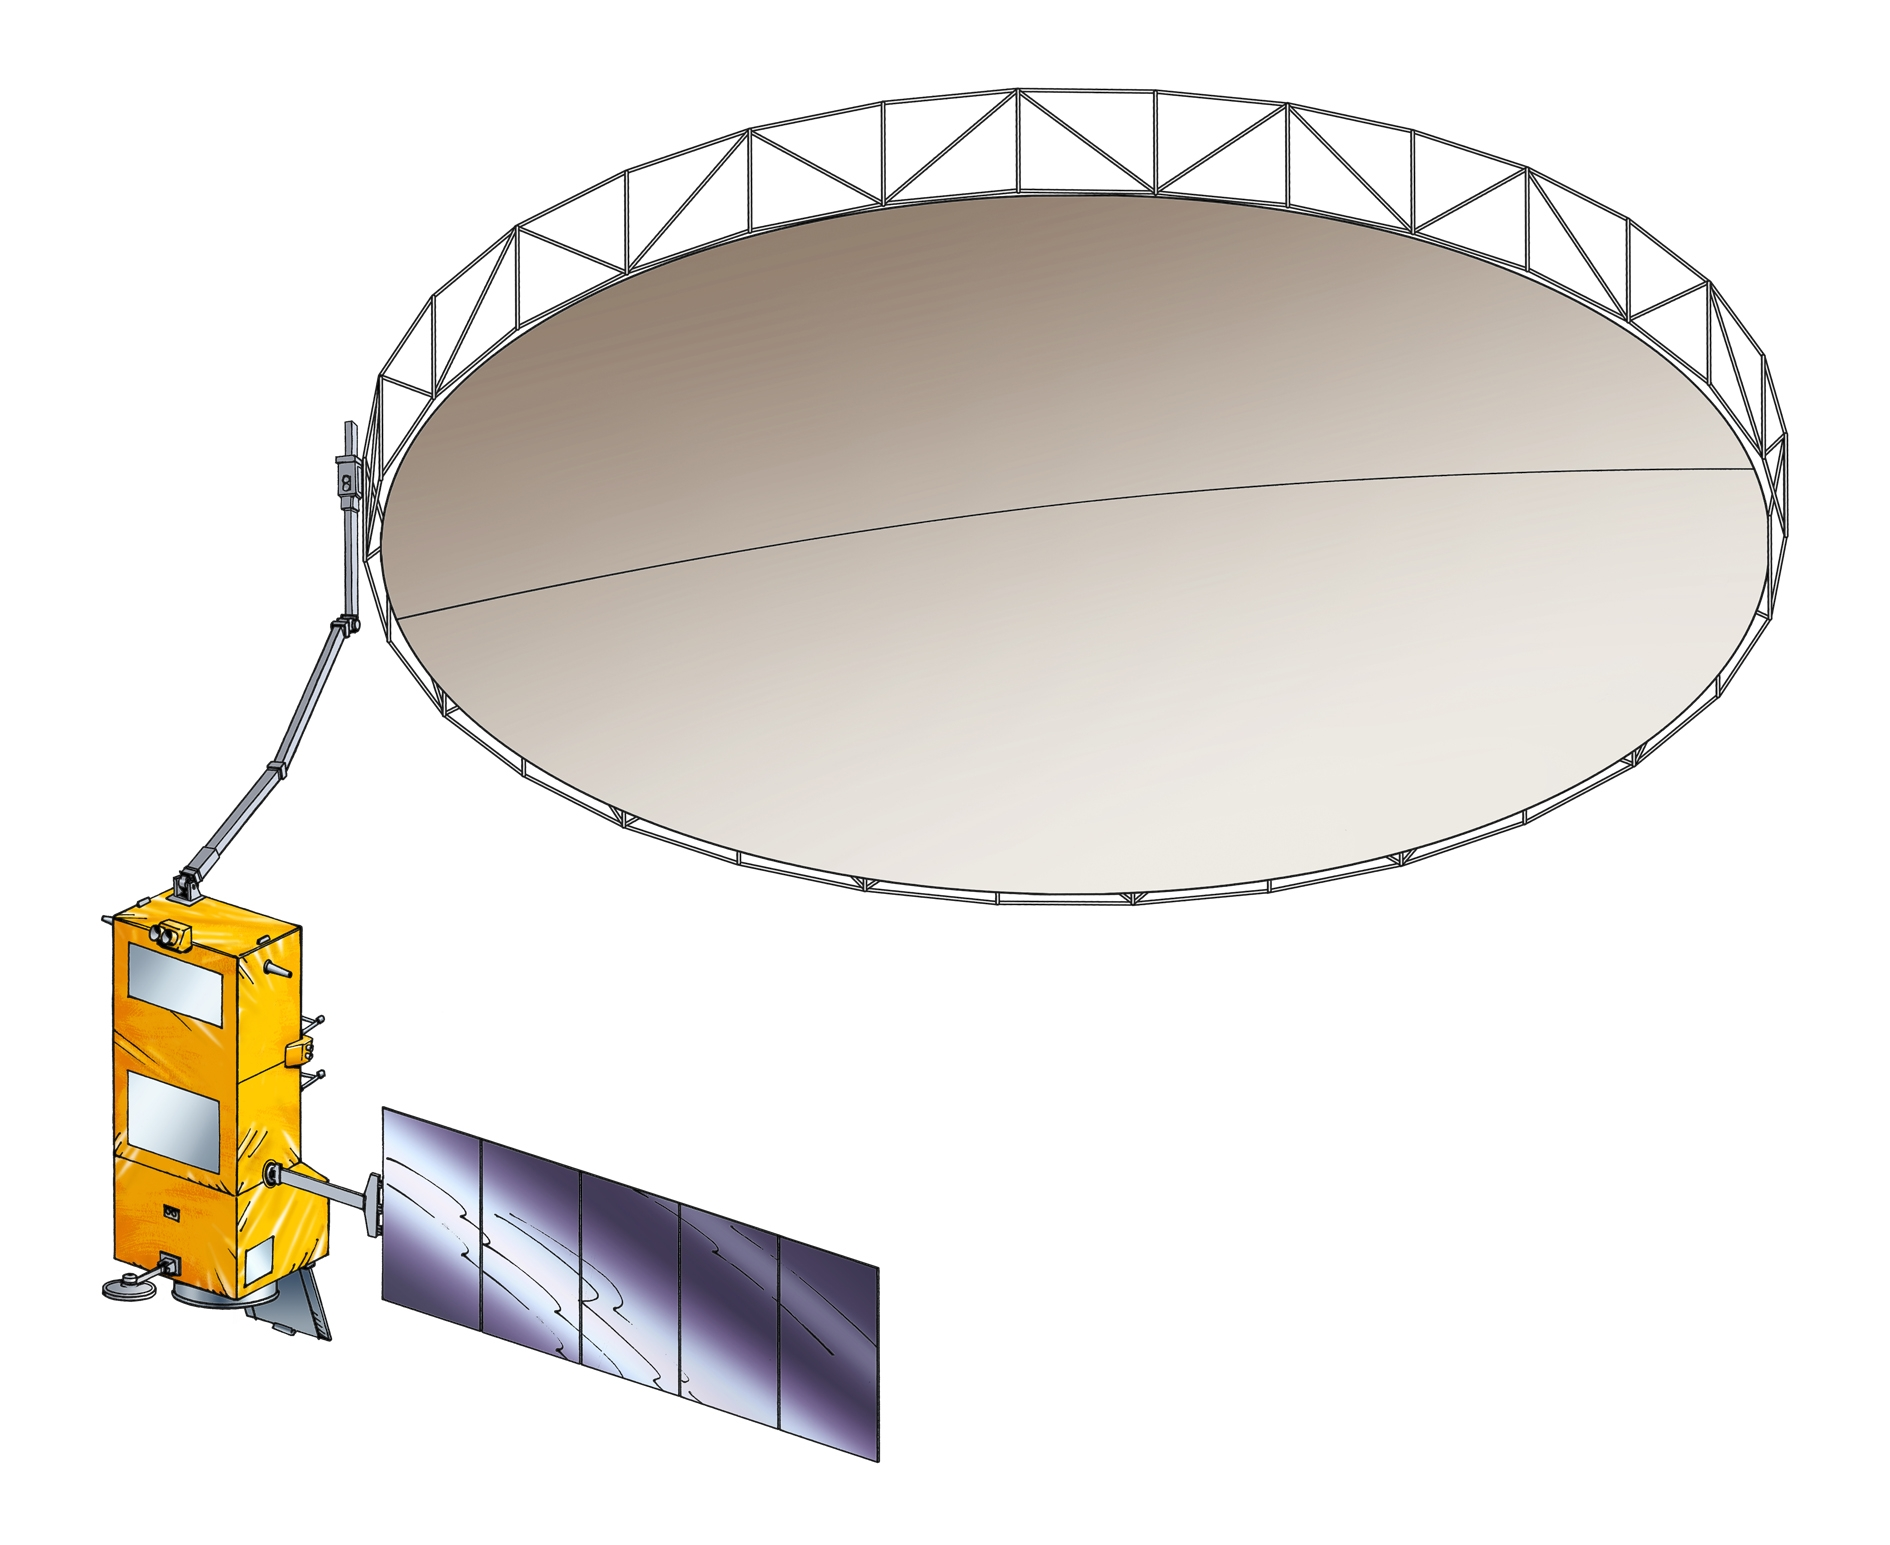 Biomass_satellite_B.jpg